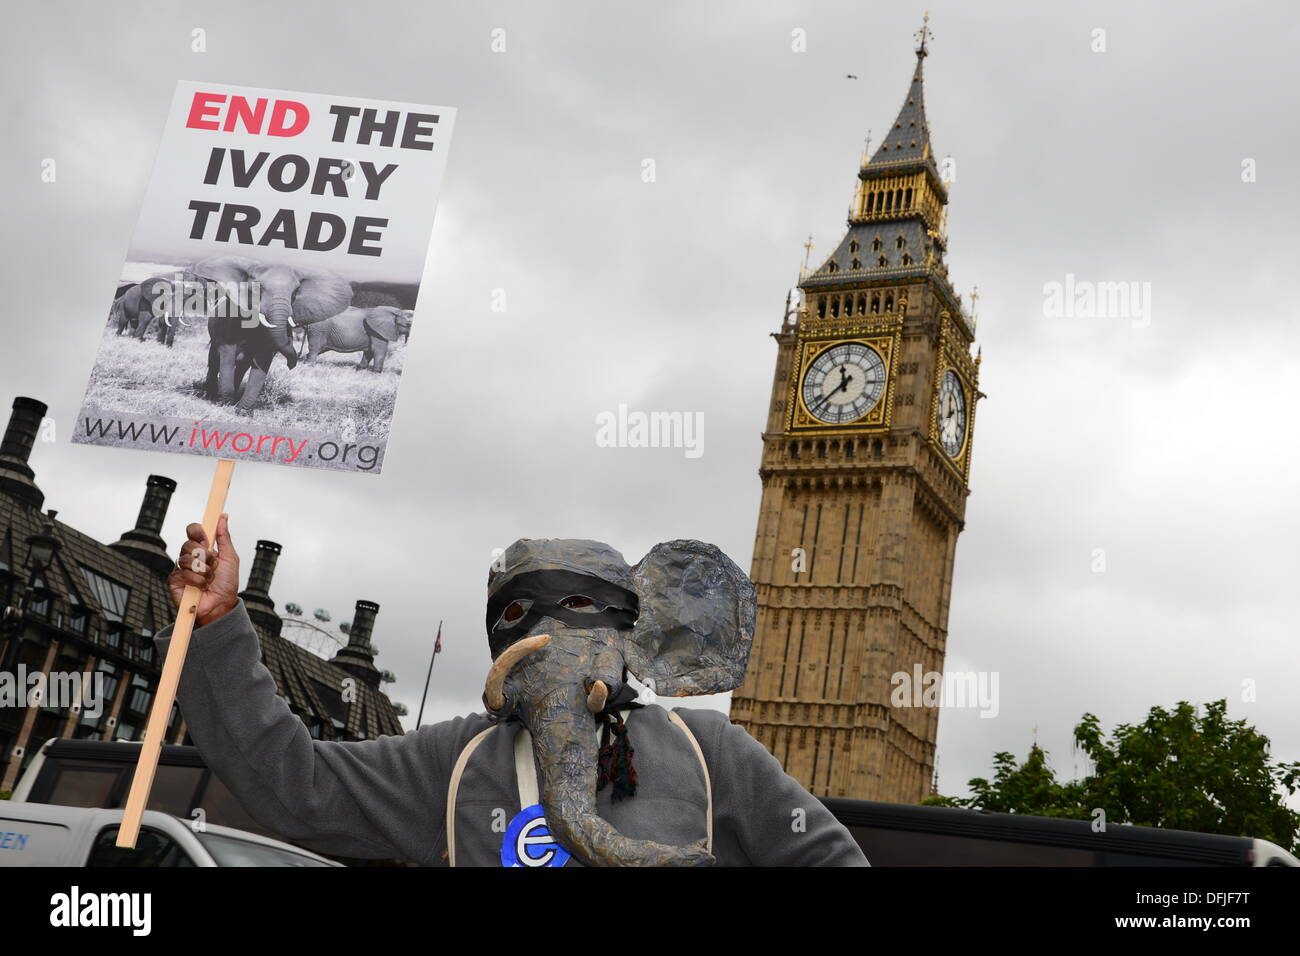 London UK, 4th Oct 2013 : Hundreds of protesters march to Parliament Square, calling on the government to support a worldwide ban on ivory. The demonstrators raised the issue of one elephant being killed every 15 minutes to supply the illegal ivory trade. See Li / Alamy Live News - Stock Image